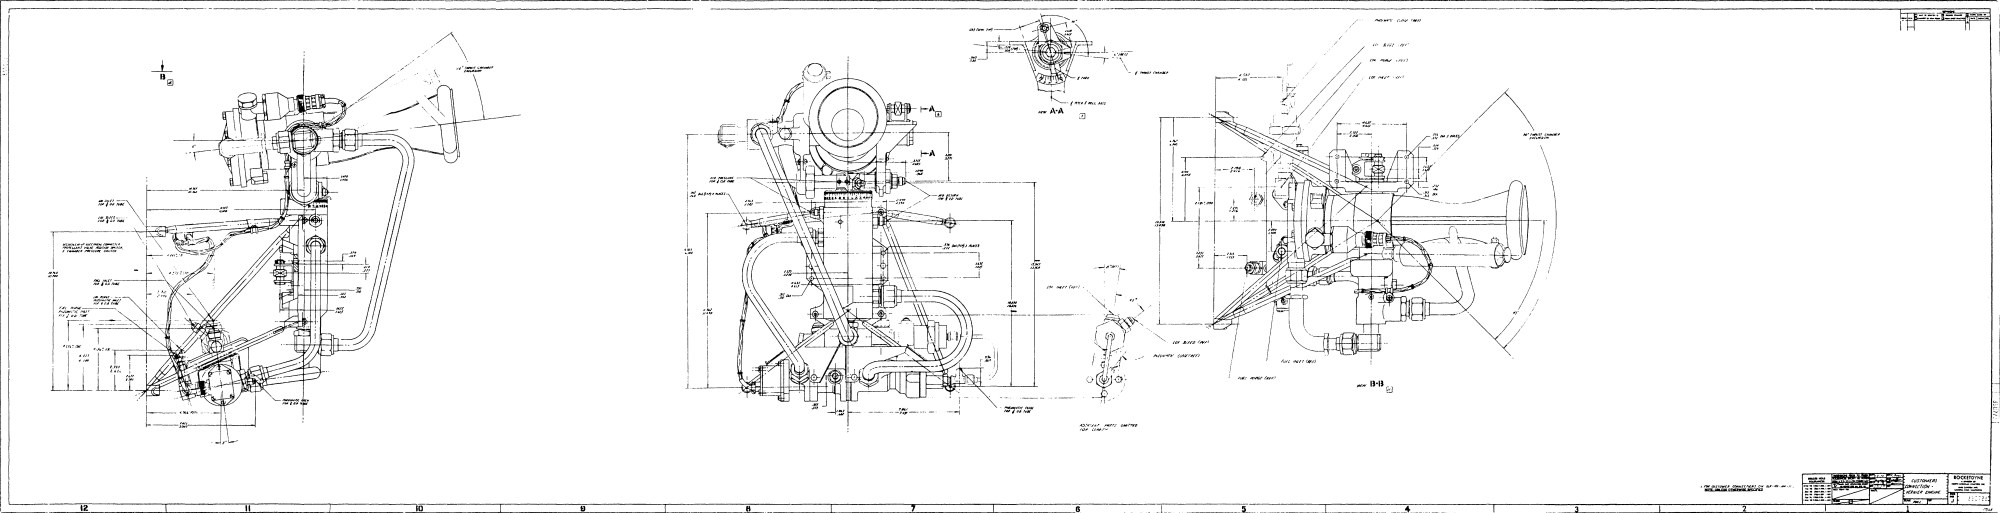 hight resolution of taken from design information report for the lv 2a propulsion system ylr79 na 13 main engine and lr101 na 11 vernier engines pages 23 24 pages 59 64